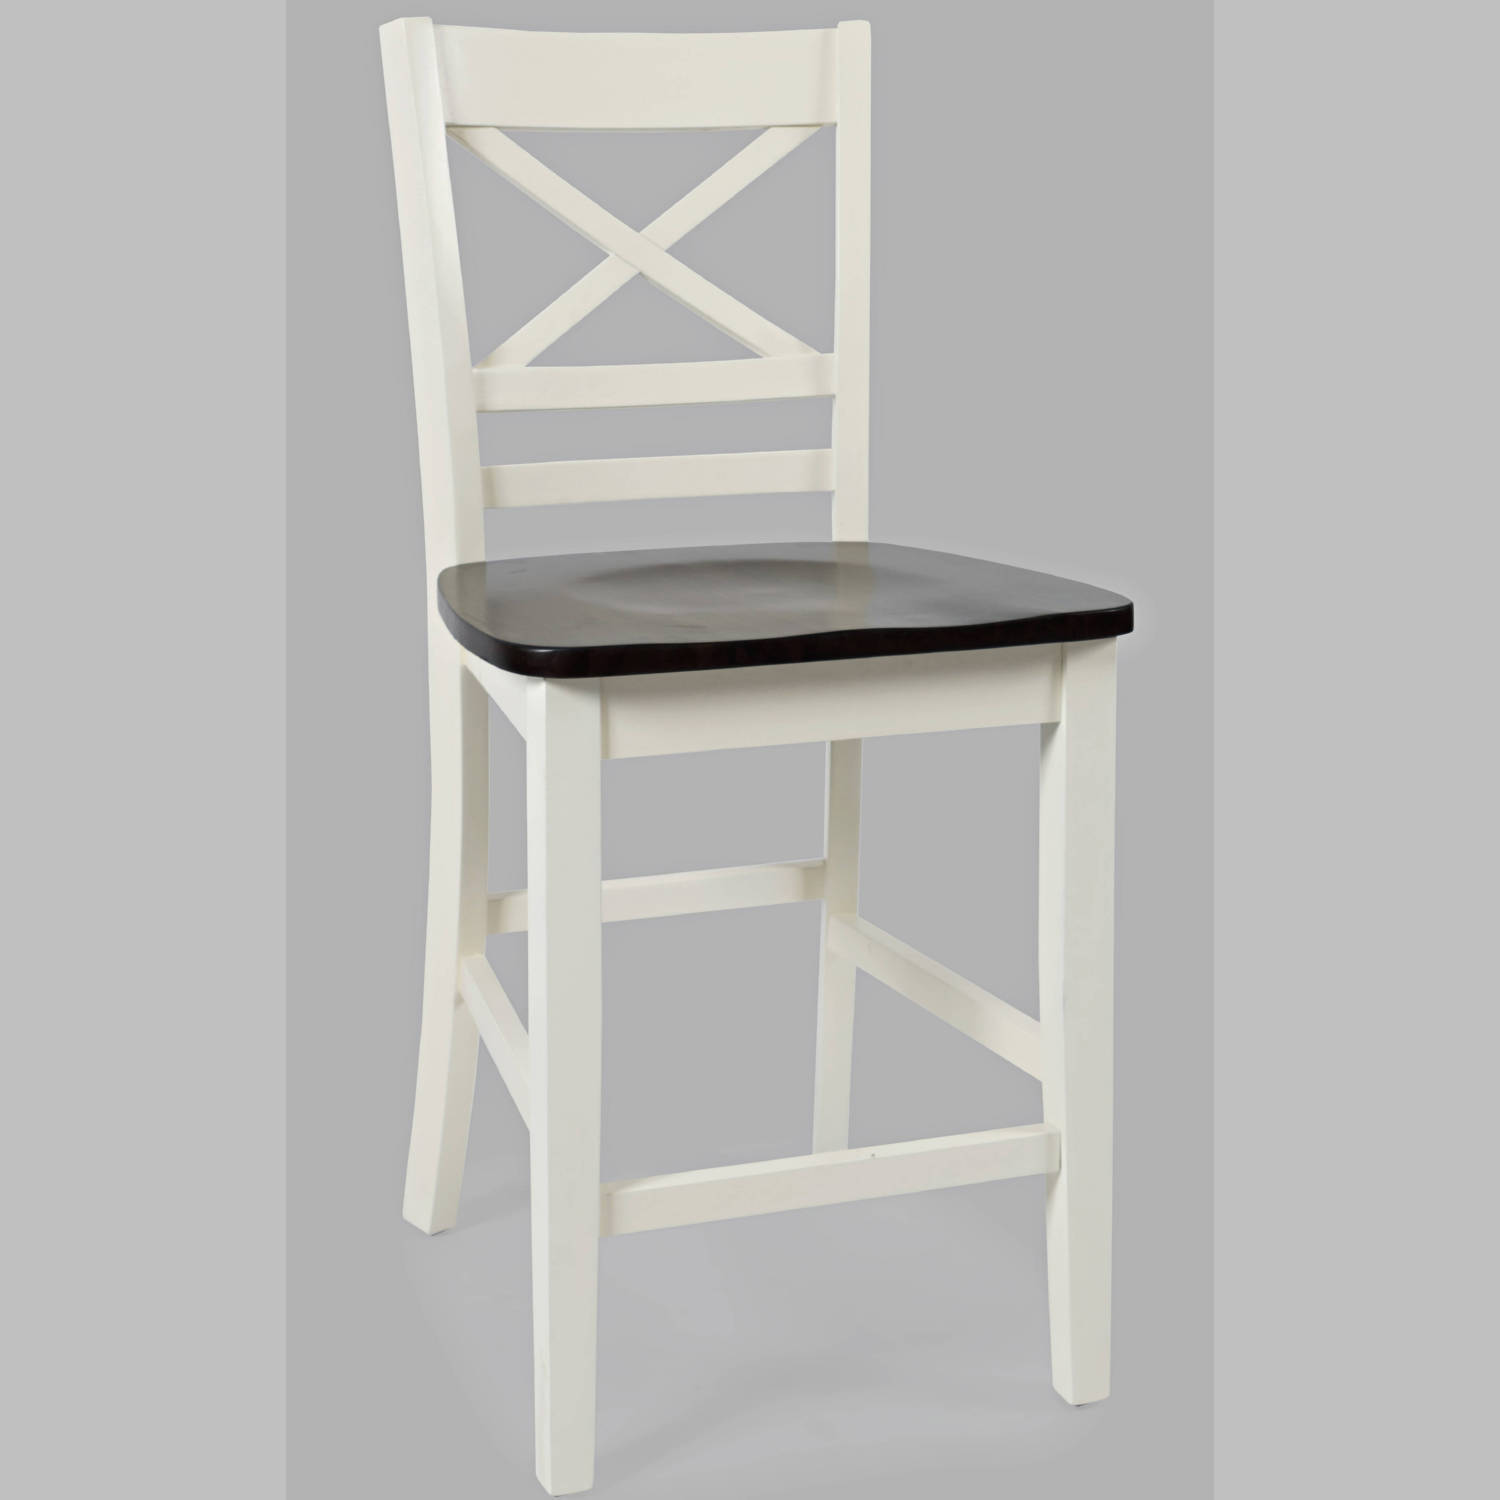 Remarkable Asbury Park X Back Counter Stool In White Brown Set Of 2 By Jofran Creativecarmelina Interior Chair Design Creativecarmelinacom